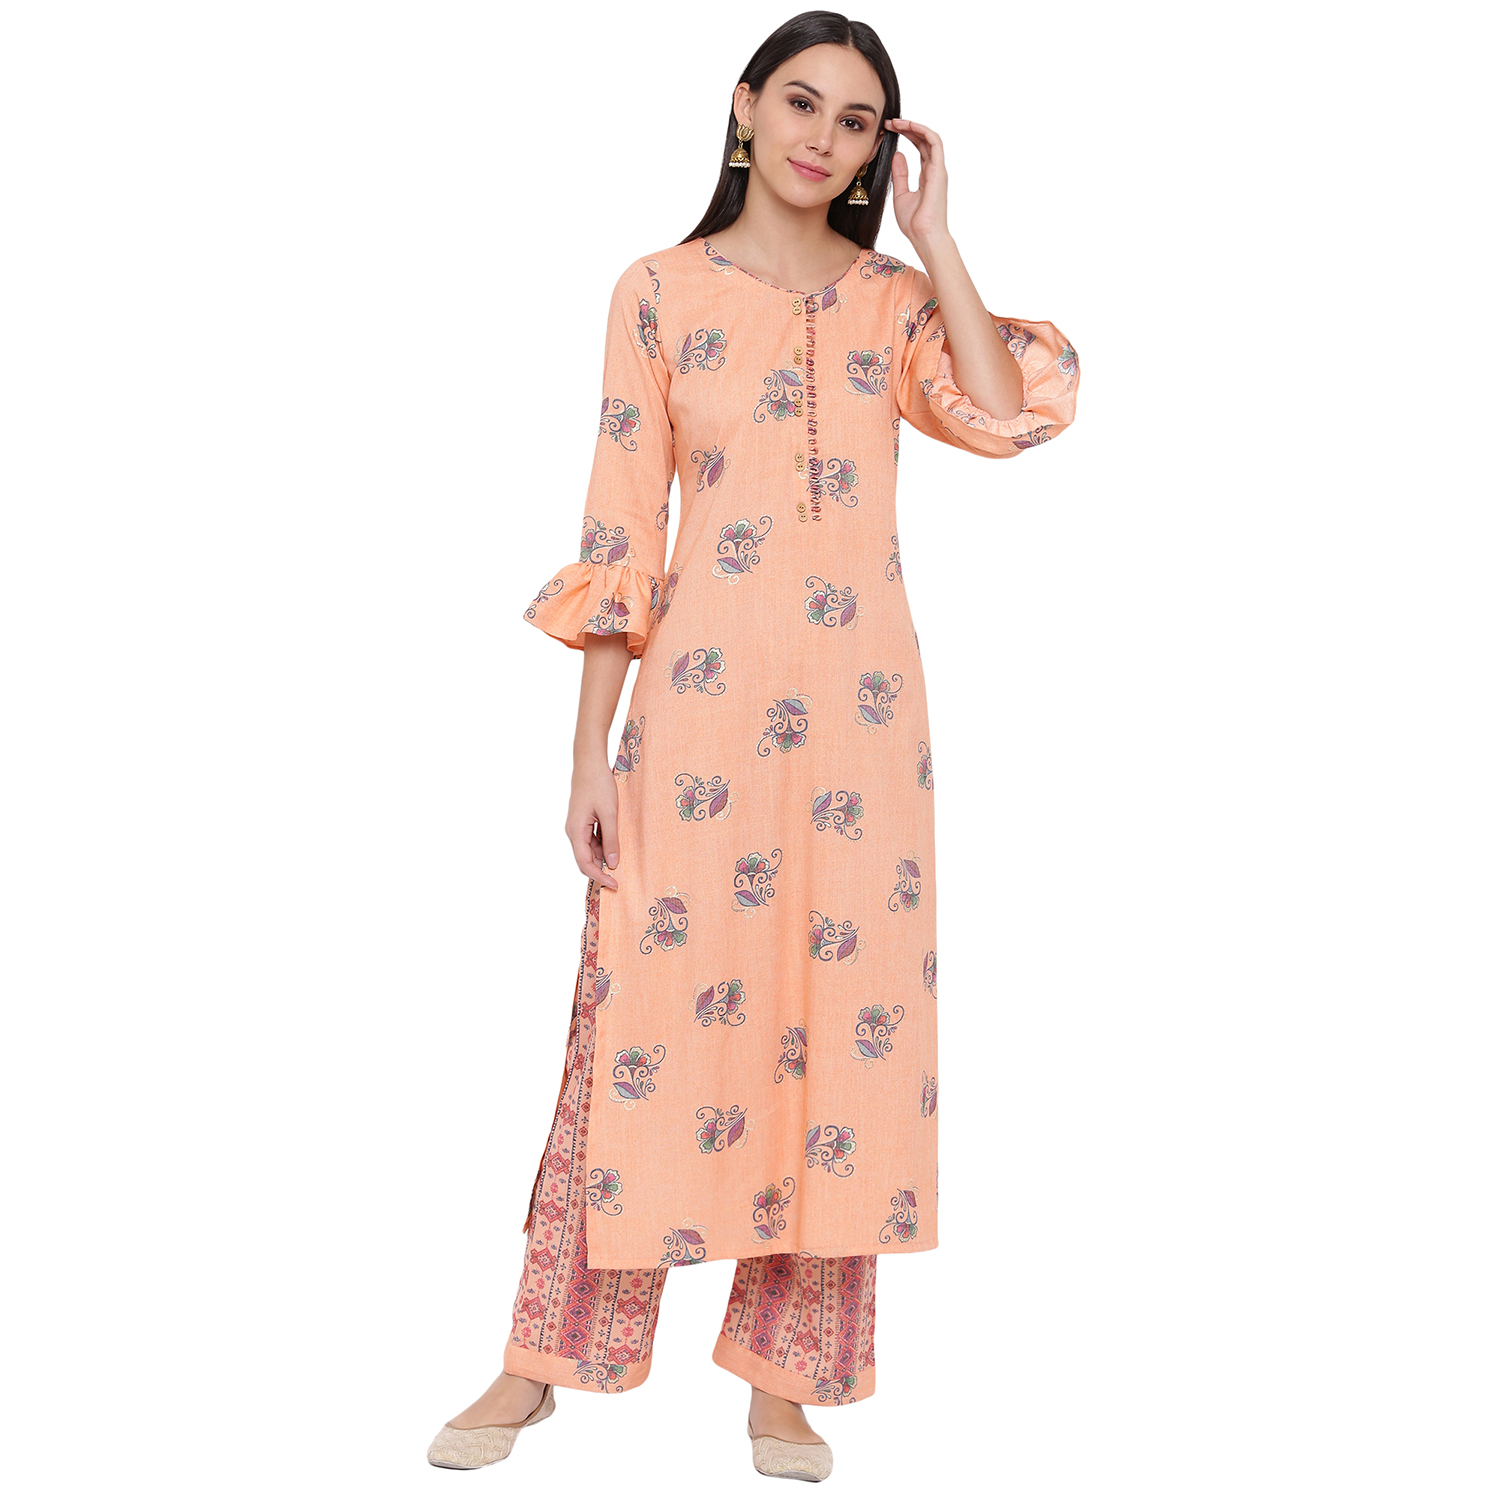 Fabnest | Fabnest womens rayon peach printed kurta and pant set with flounce sleeve and button detailing at the neck